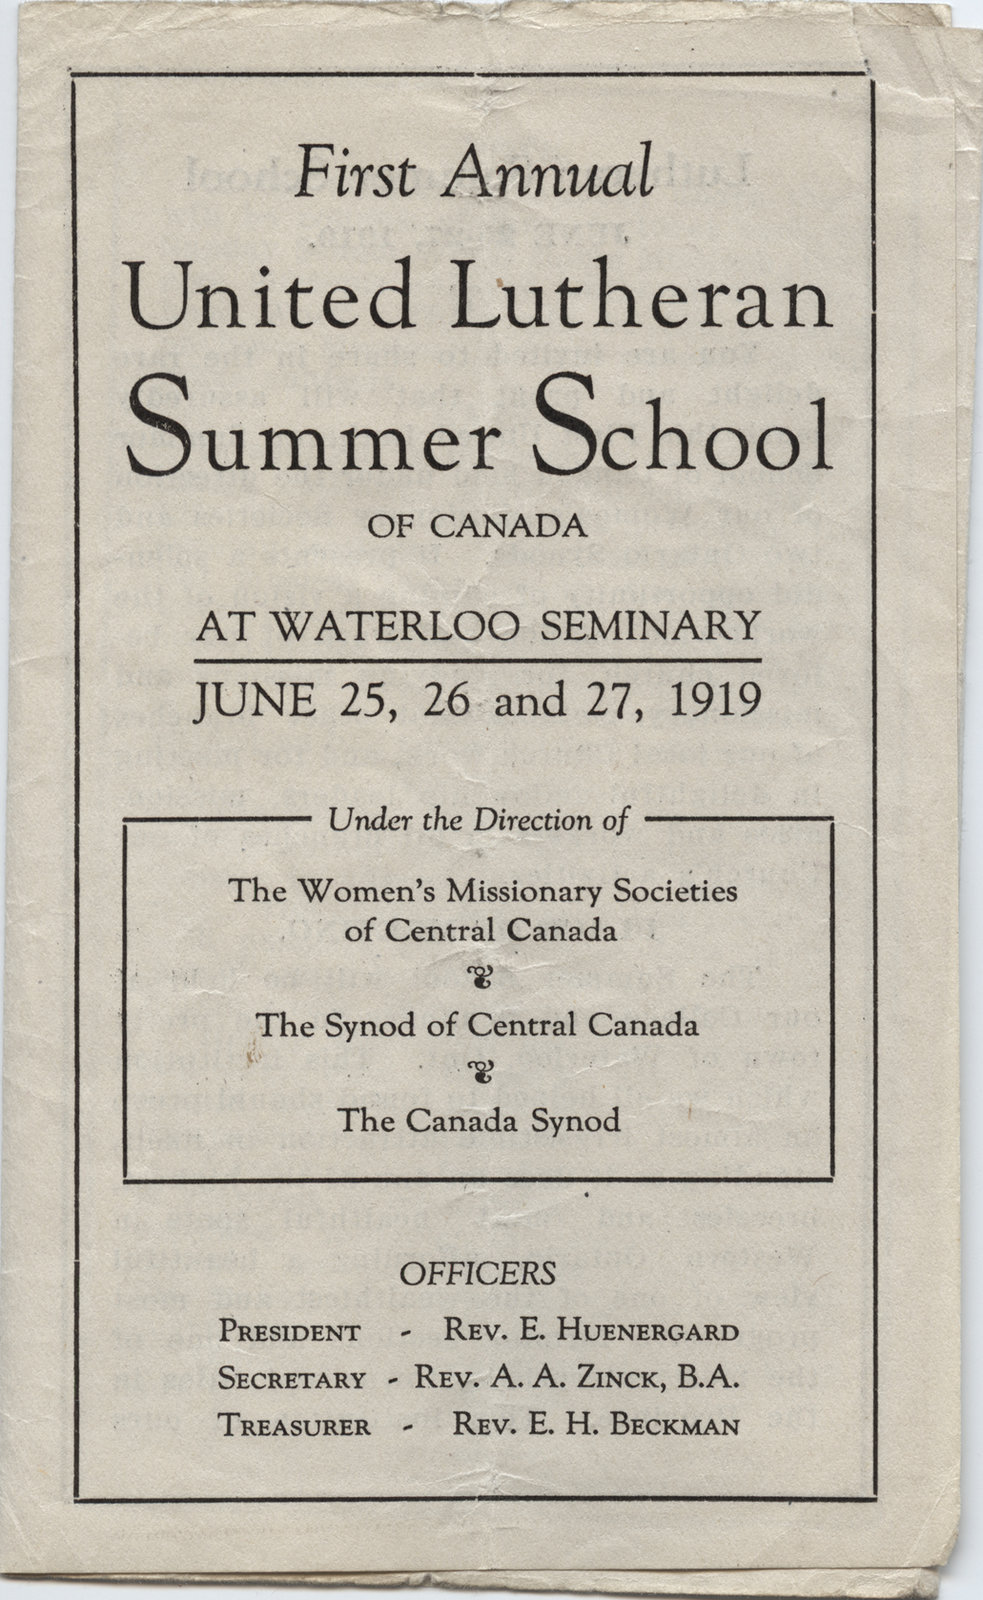 First annual United Lutheran Summer School of Canada promotional brochure, 1919